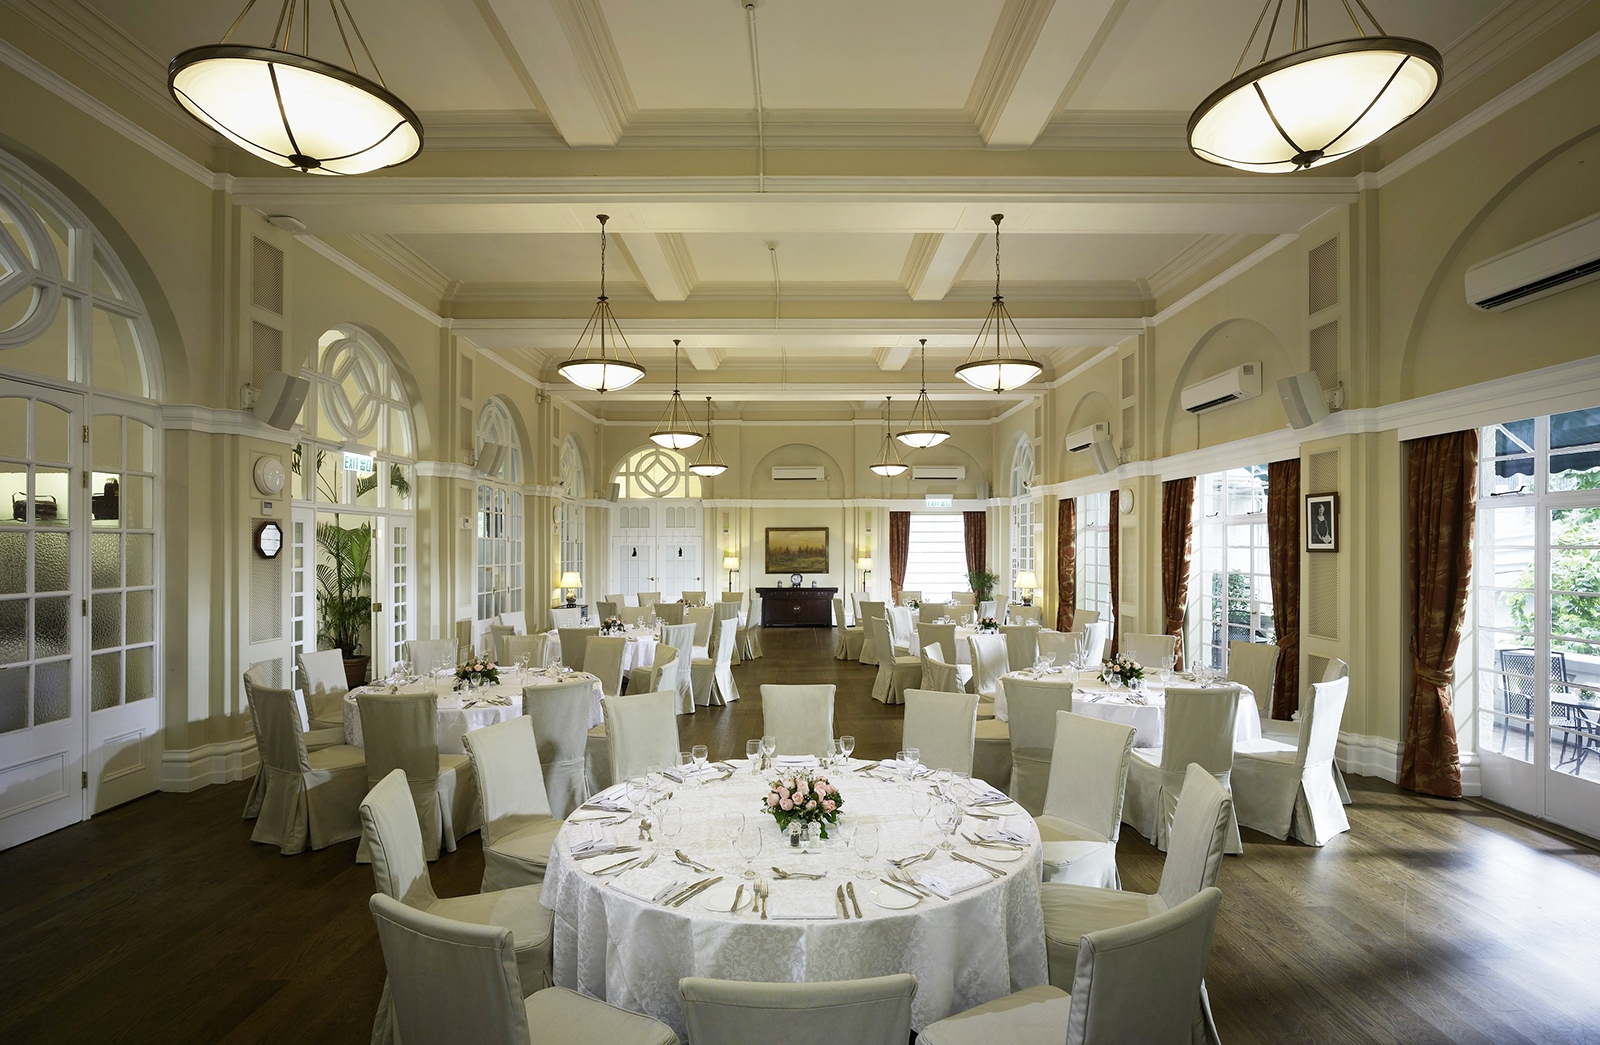 The Helena May Banquet Hall